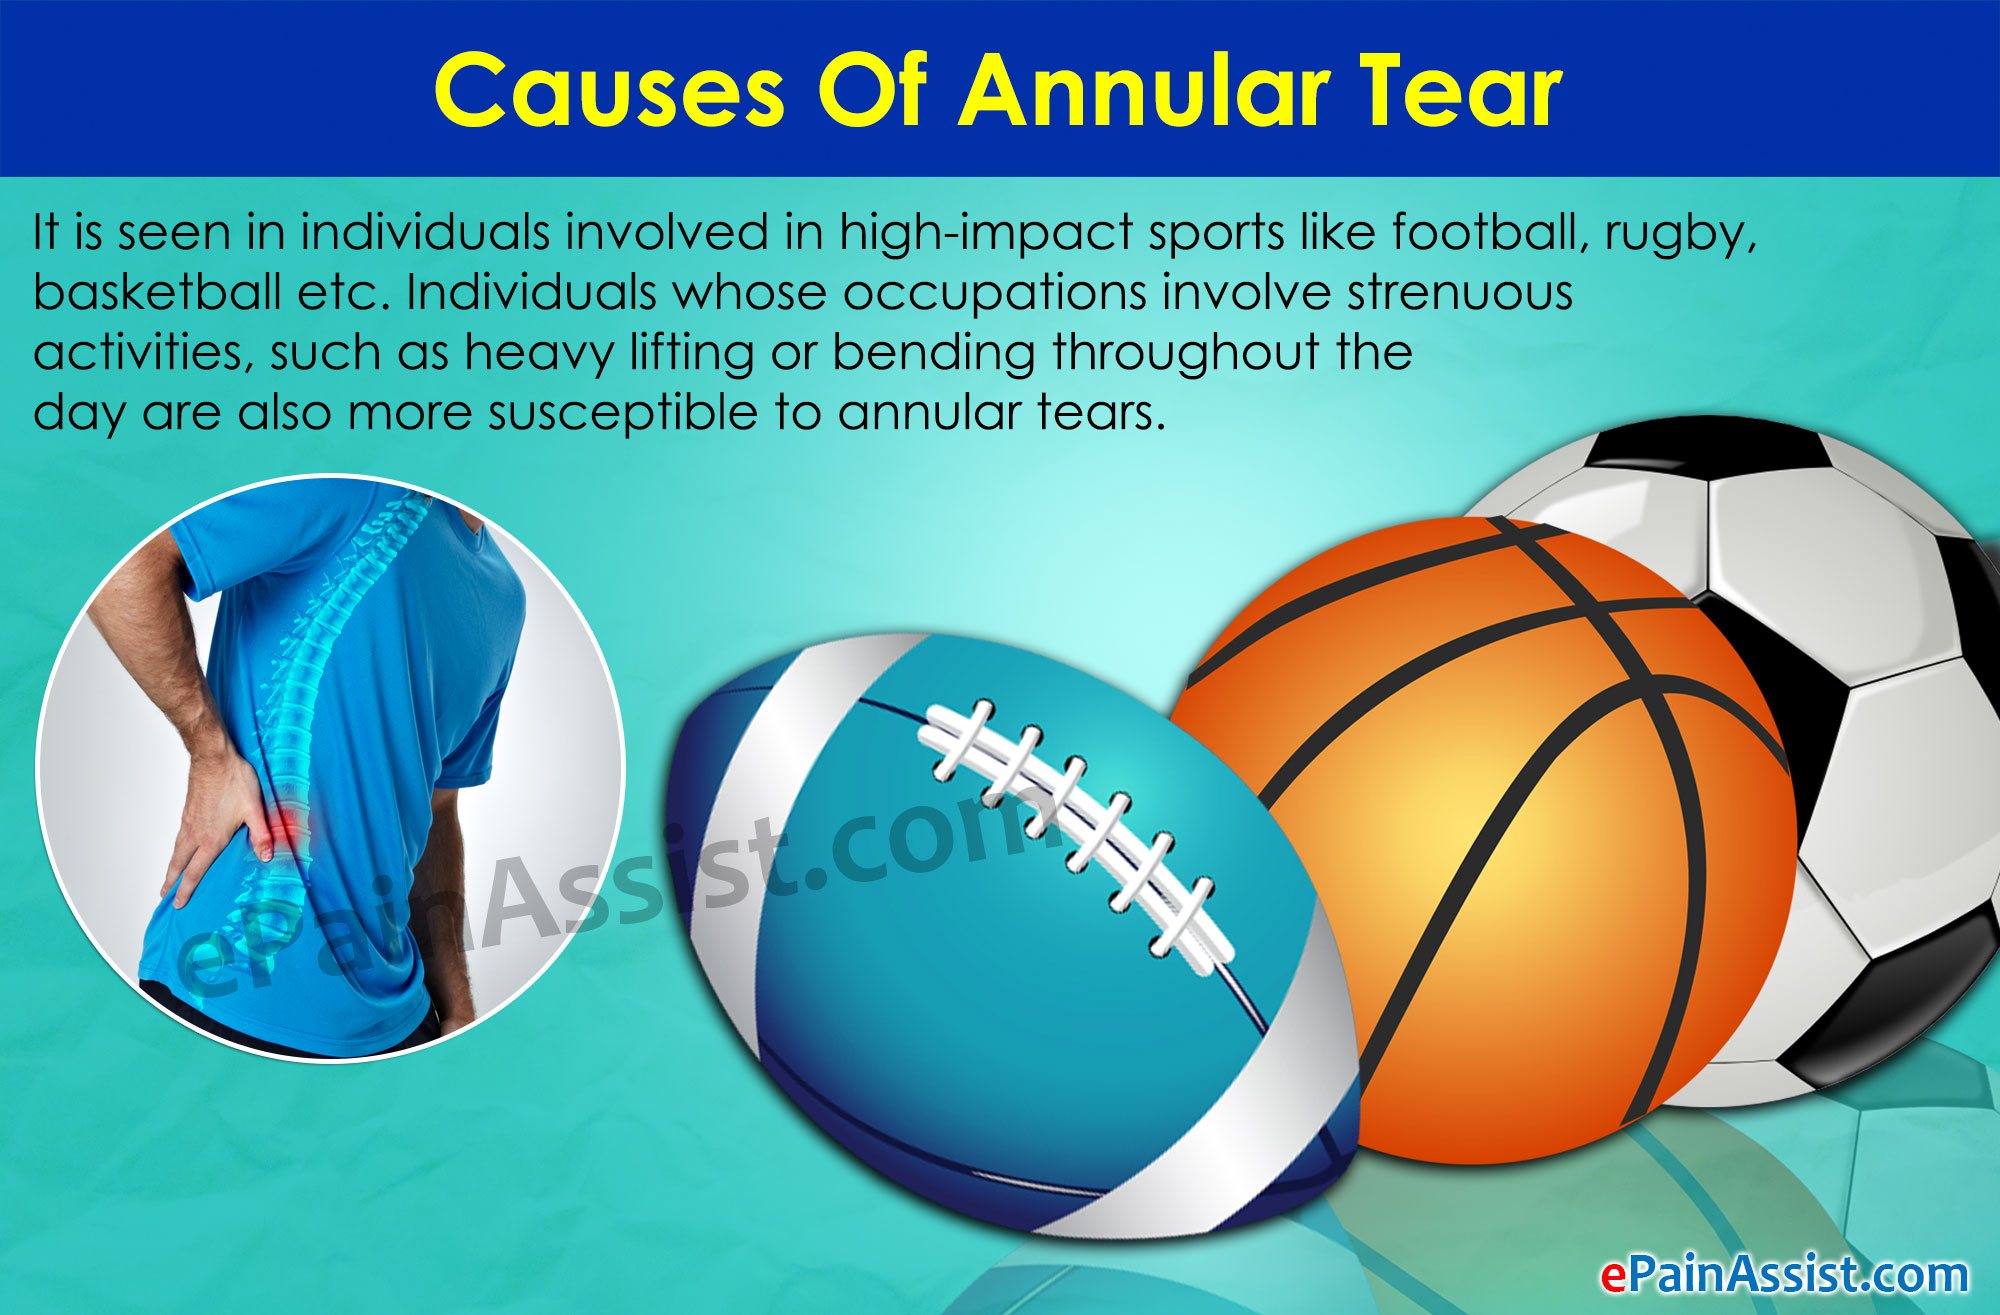 Causes Of Annular Tear